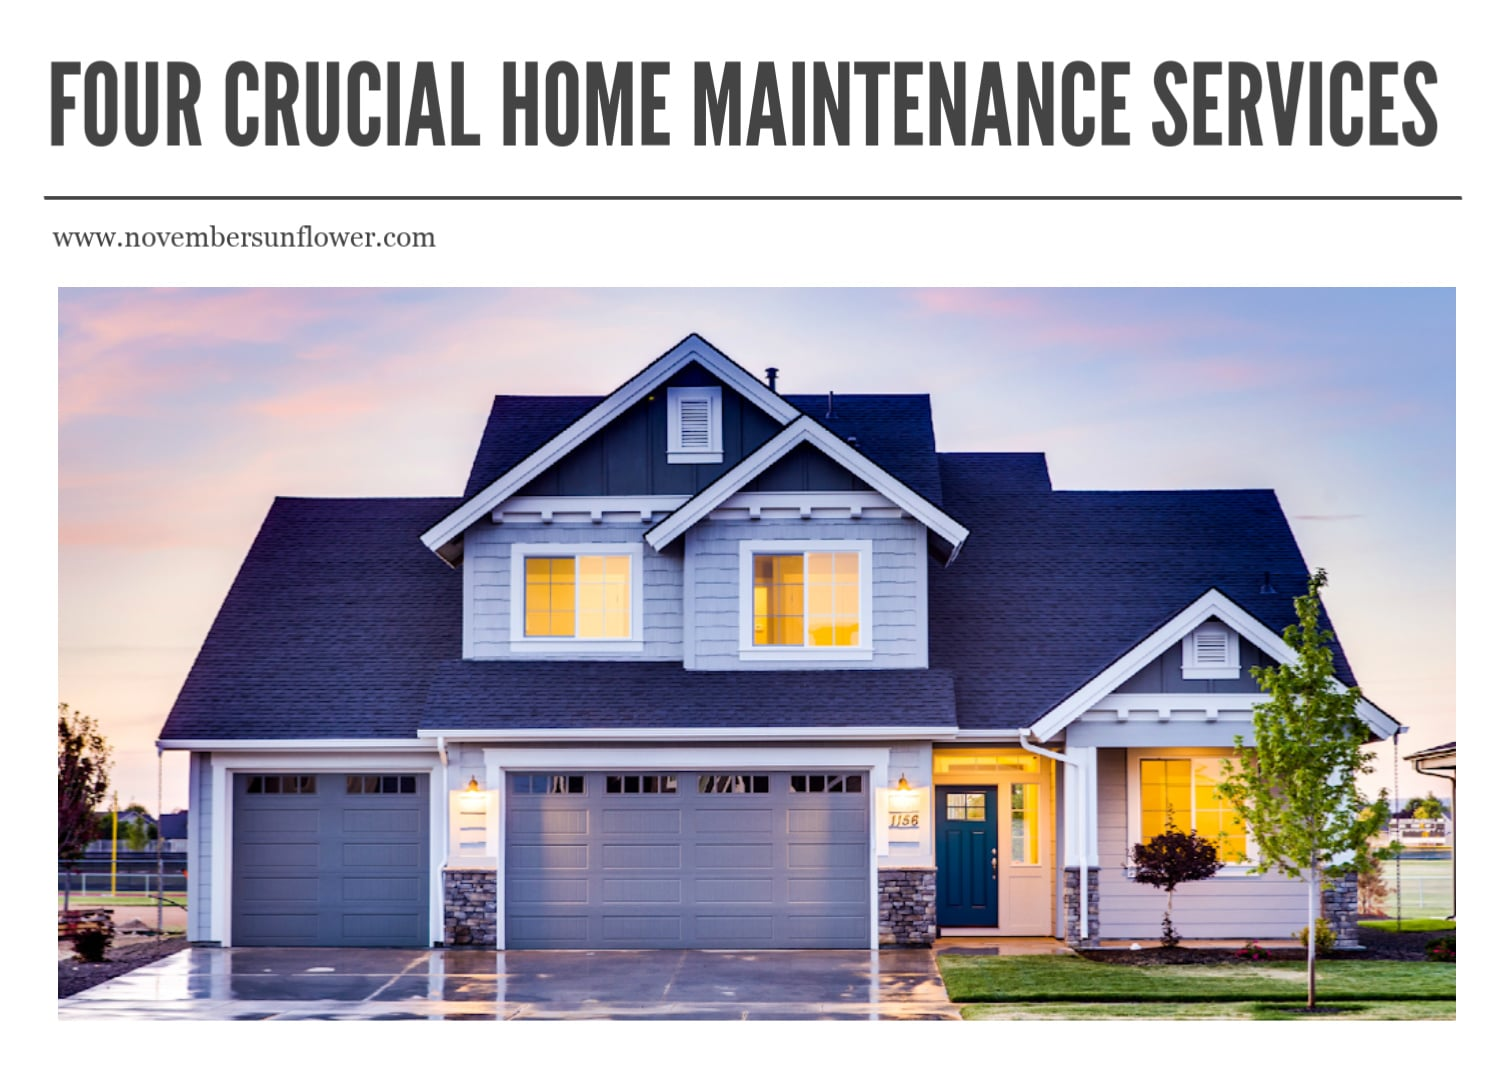 Crucial Home Maintenance Services